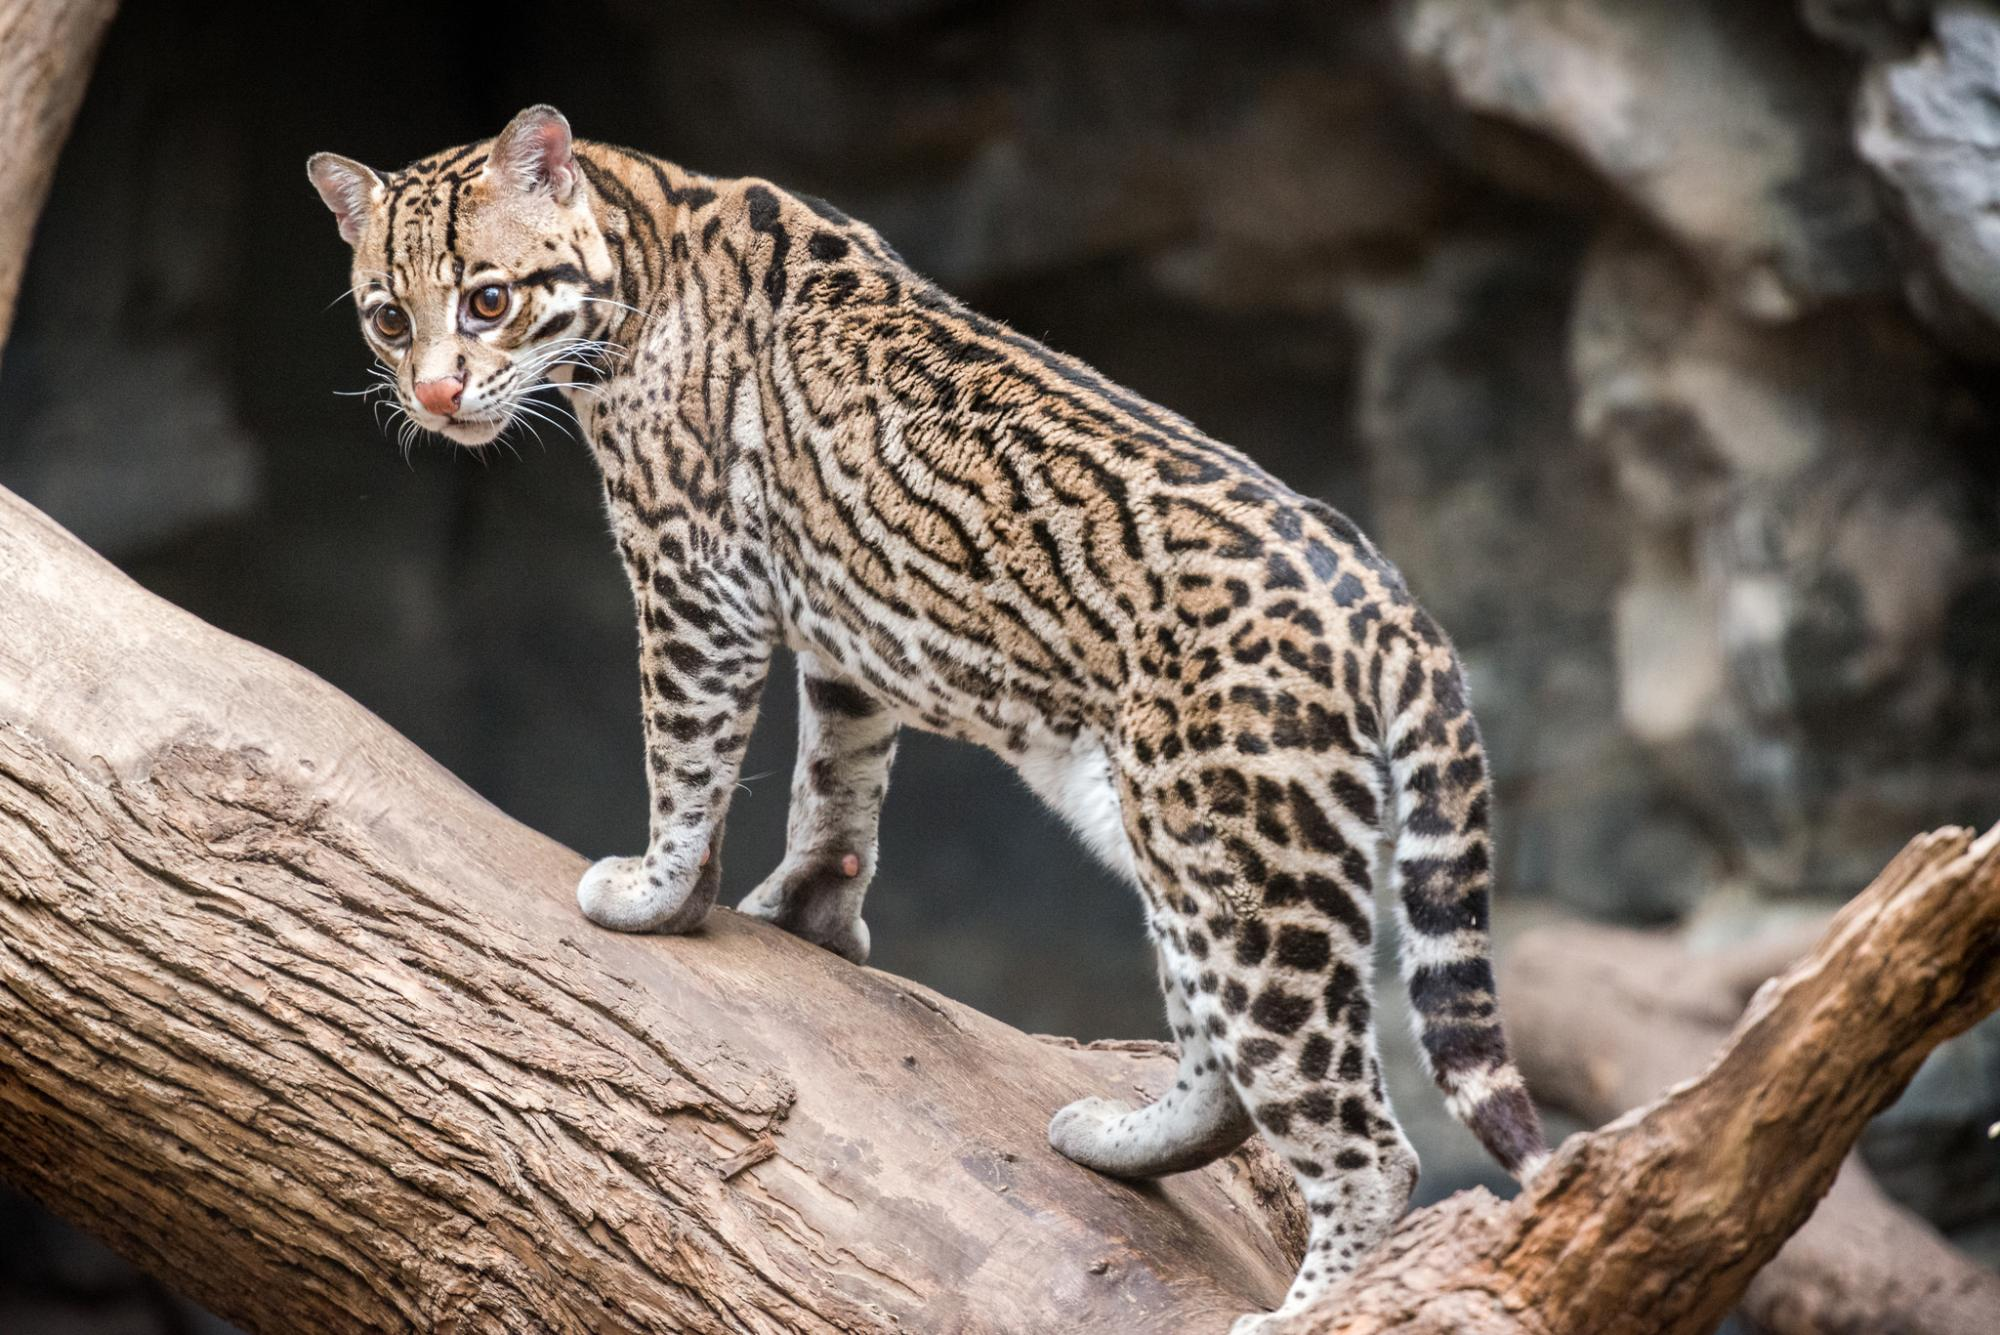 Ocelot standing on a branch | Photo by Eric Kilby